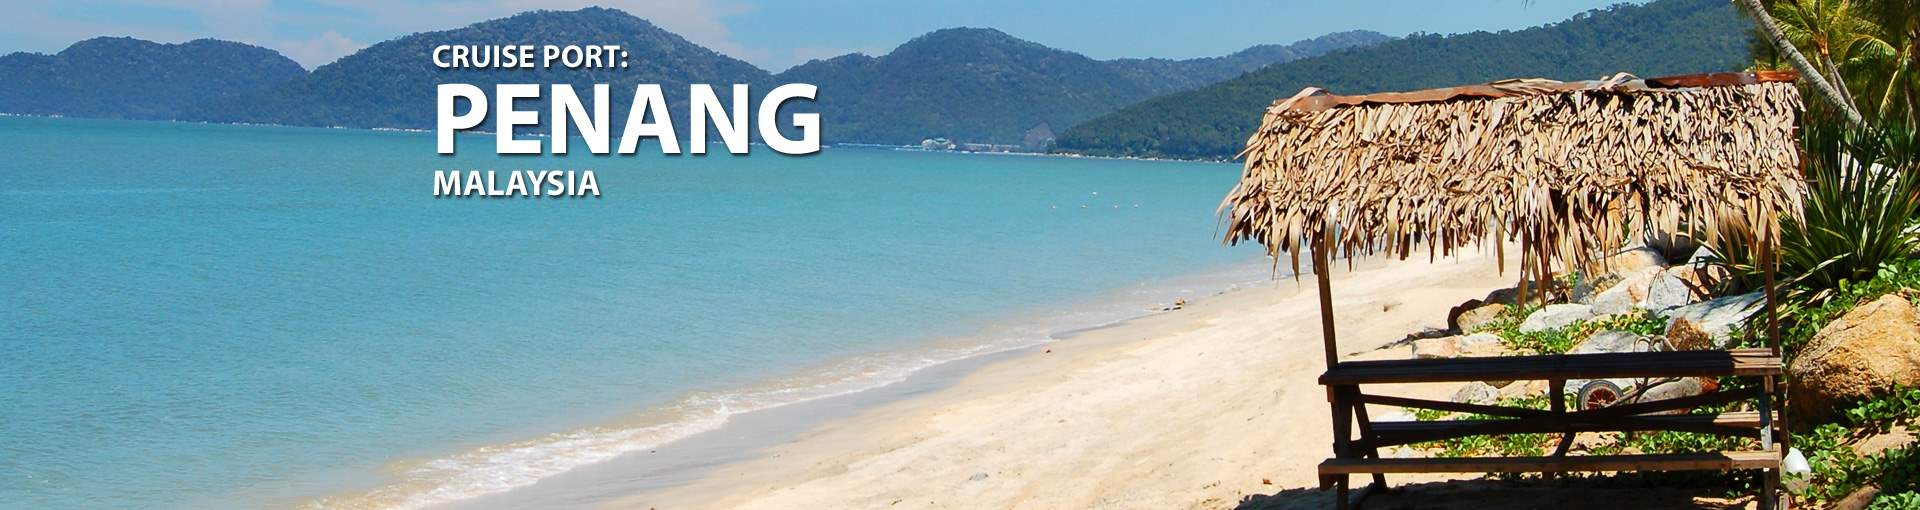 penang casino cruise price 2019